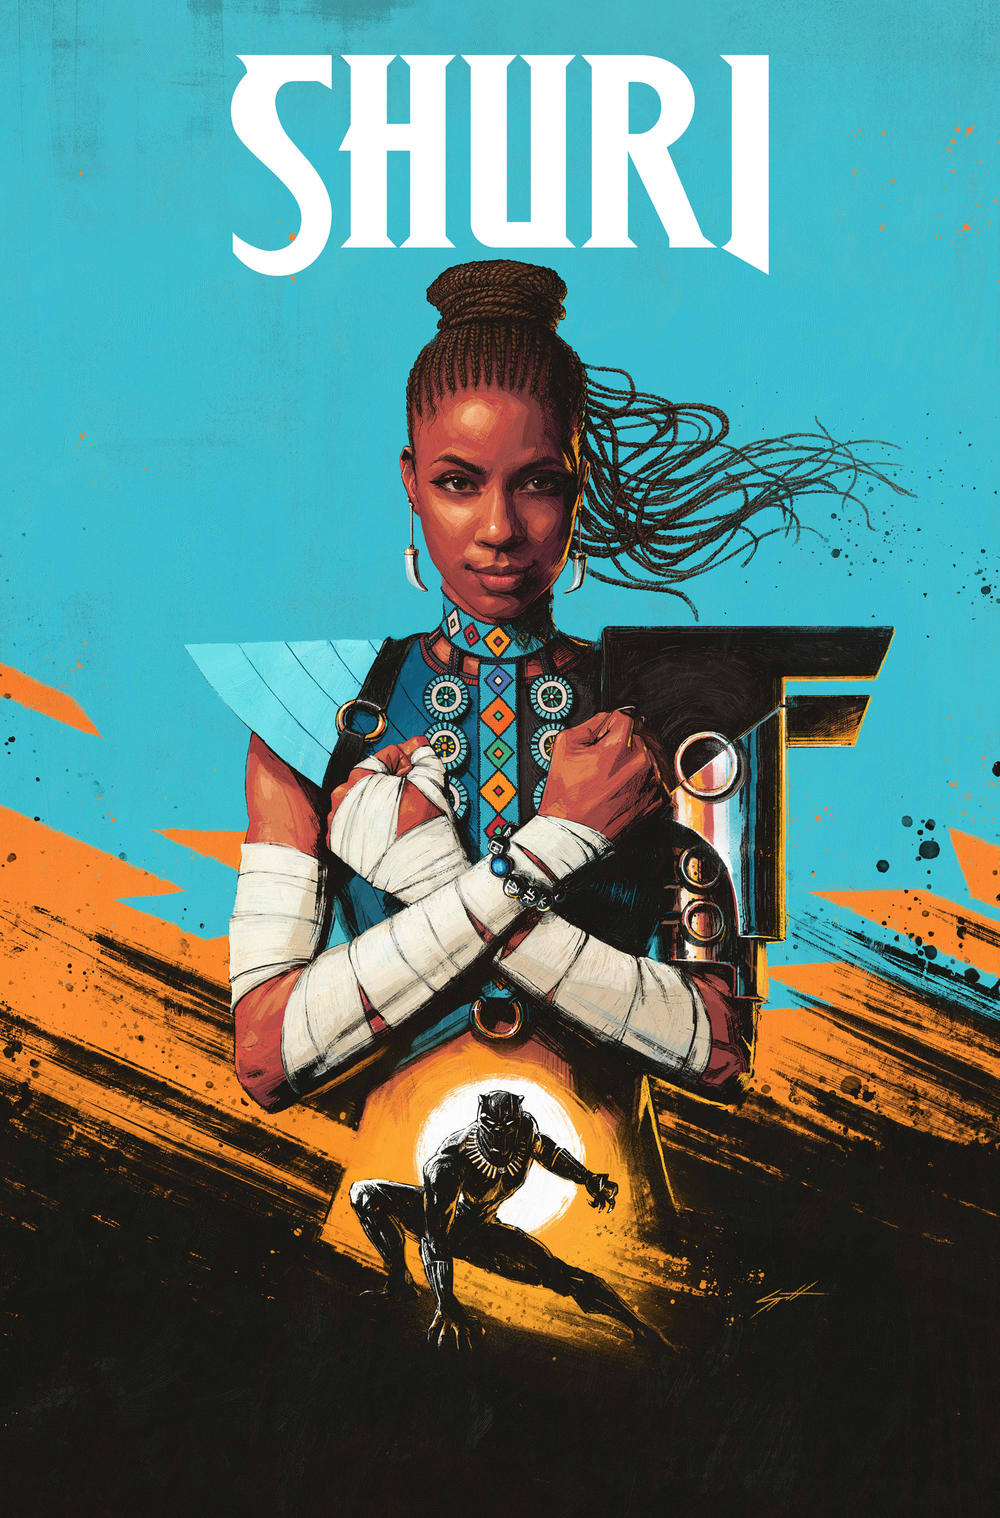 SHURI #1 cover by Sam Spratt